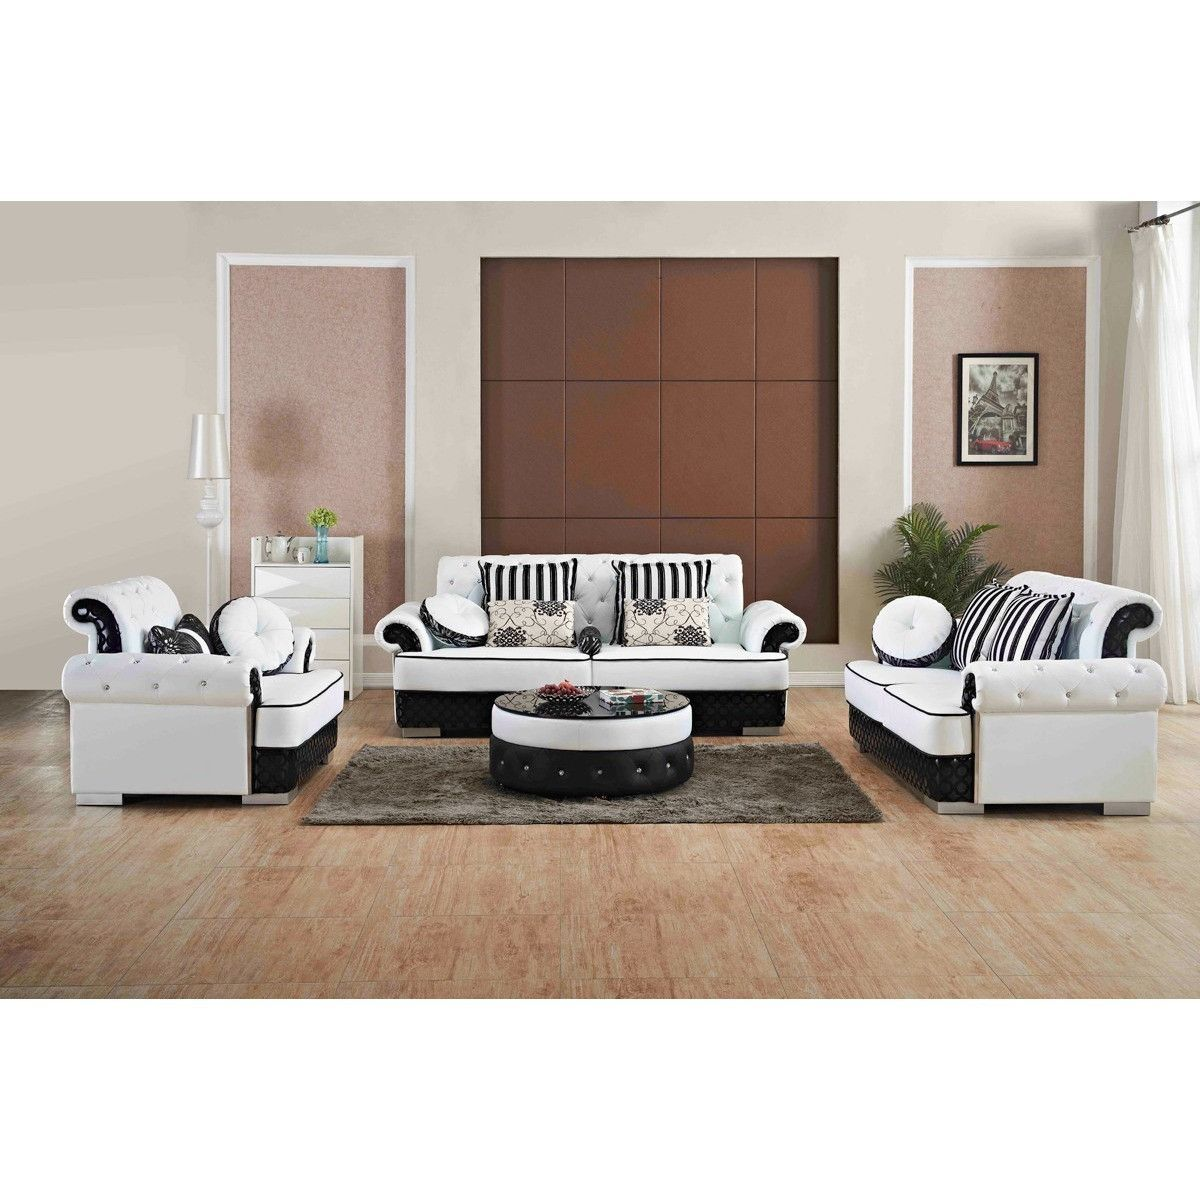 Divani Casa J607 Modern White Amp Black Bonded Leather Sofa